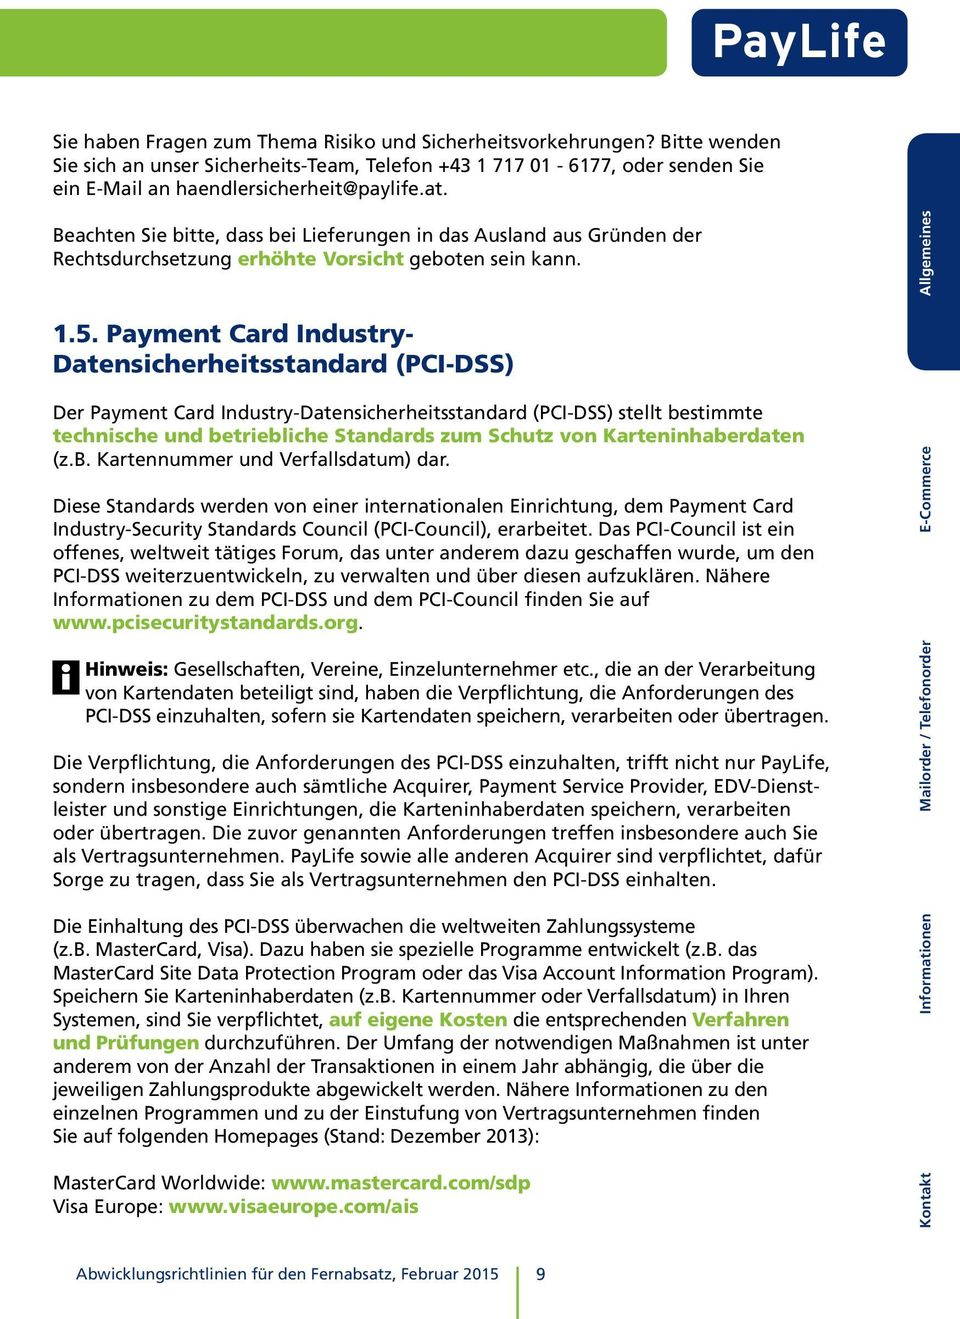 Payment Card Industry- Datensicherheitsstandard (PCI-DSS) Der Payment Card Industry-Datensicherheitsstandard (PCI-DSS) stellt bestimmte technische und betriebliche Standards zum Schutz von